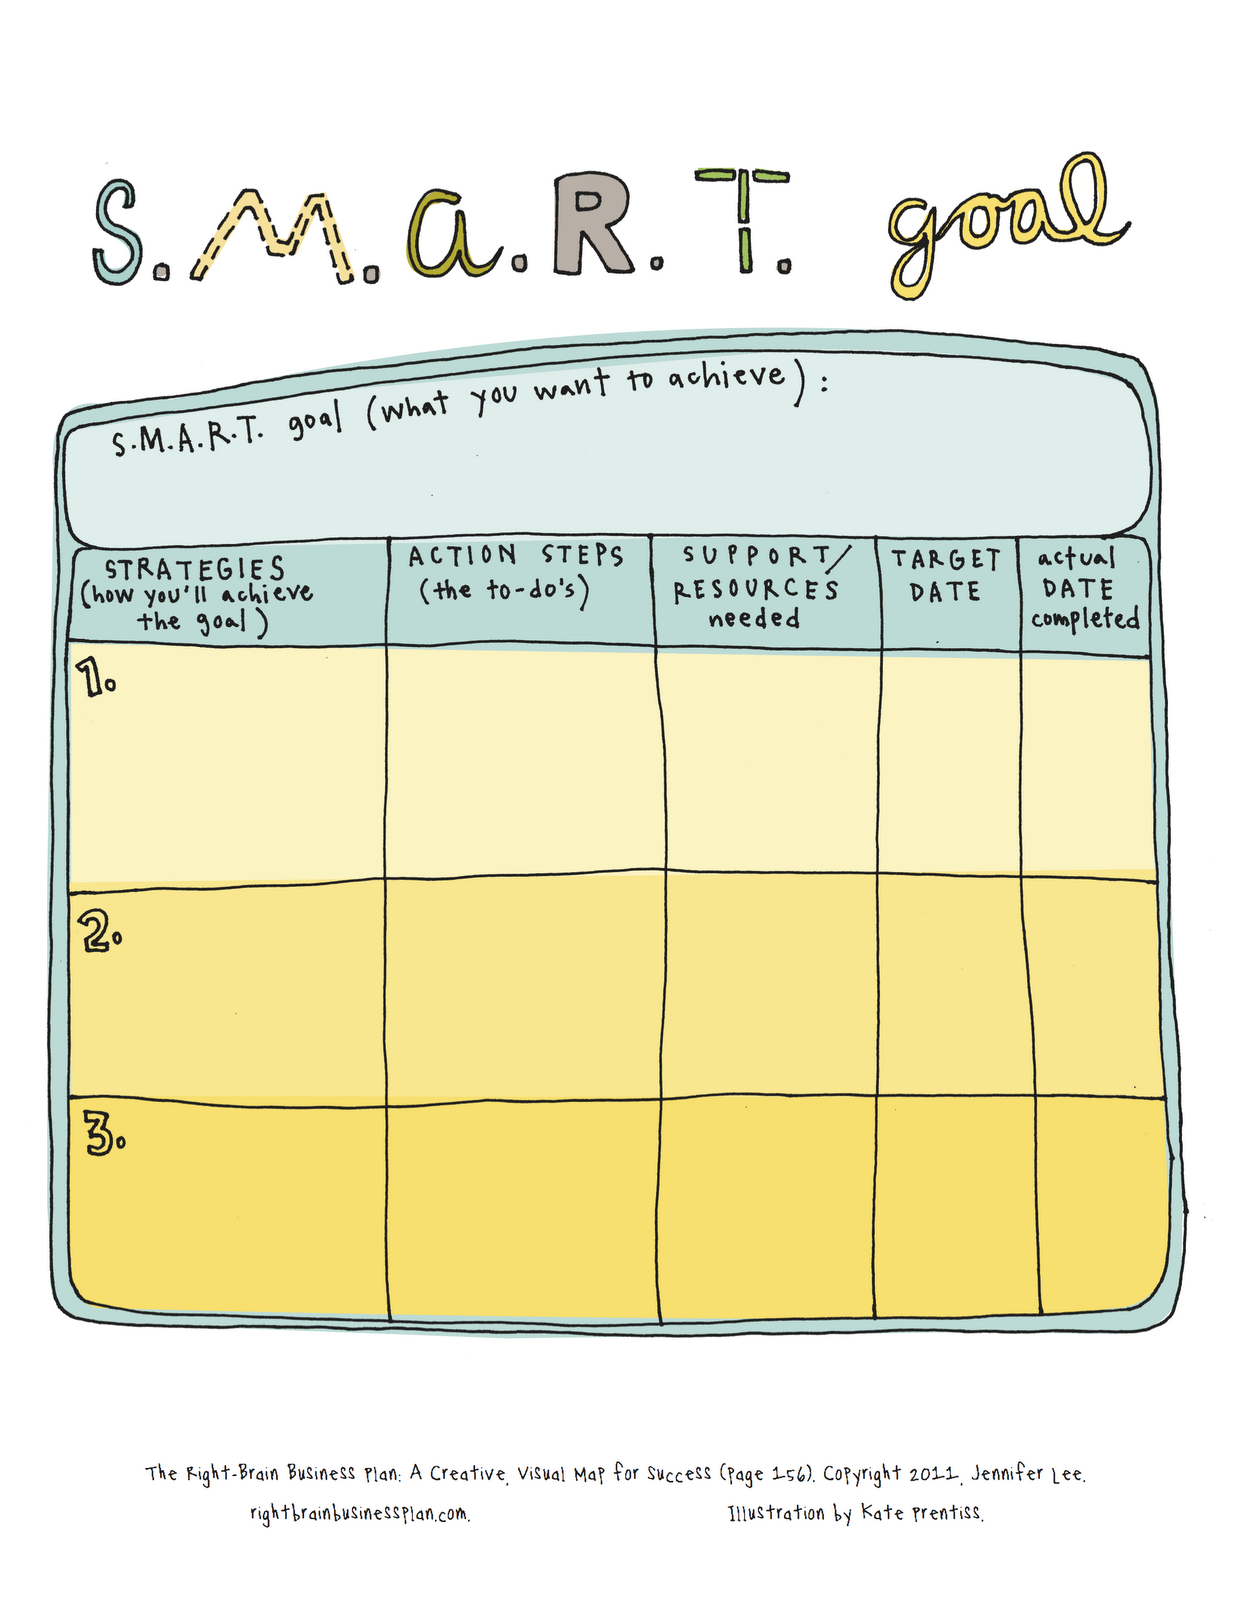 pretty pink ponies: Development topic #1: Goal-setting (imgs) | Etsy ...